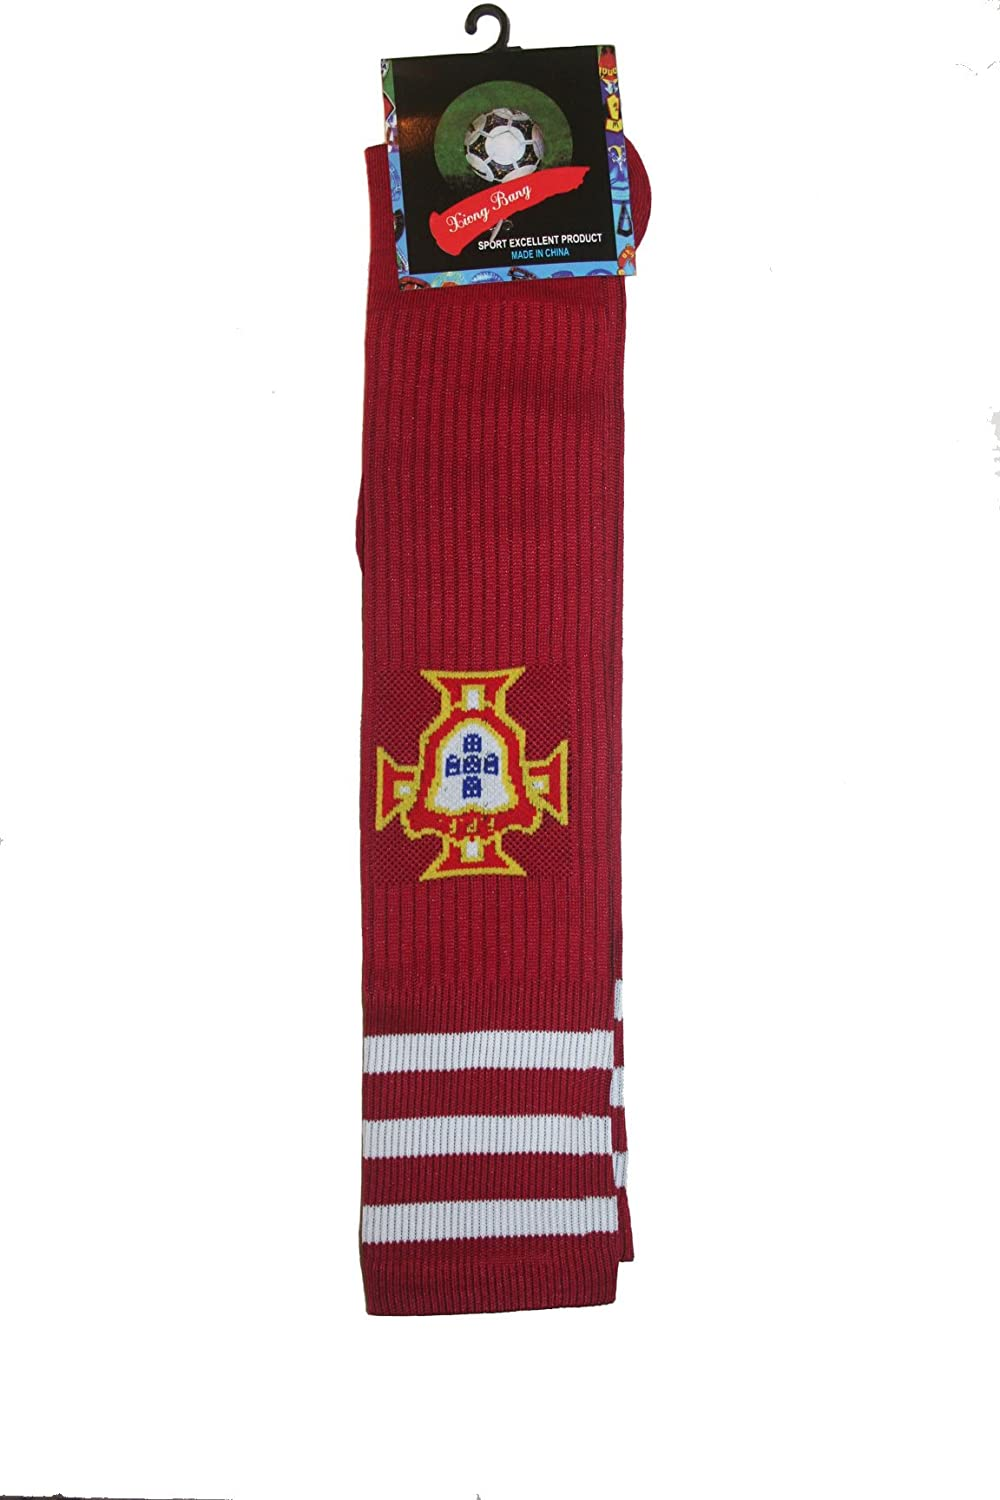 Portugal Red FPF Logo Soccer World Max 76% OFF Size Adult Cup Socks New High order